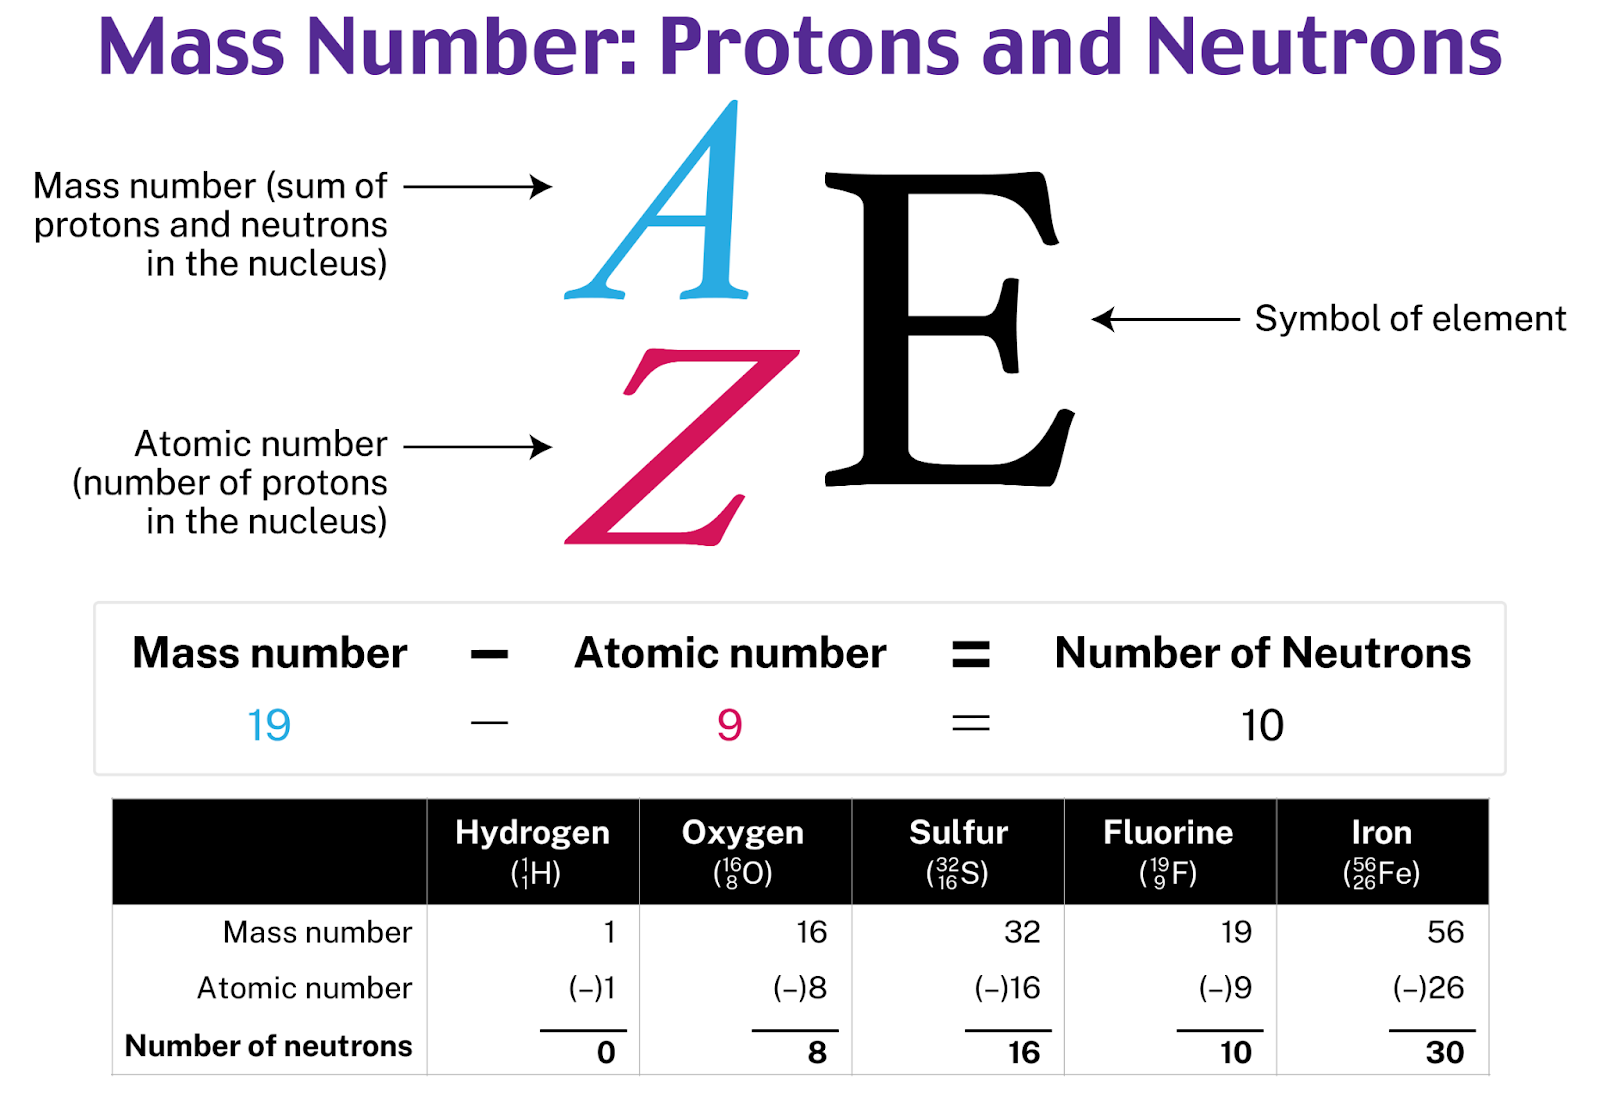 Mass Number Protons and Neutrons